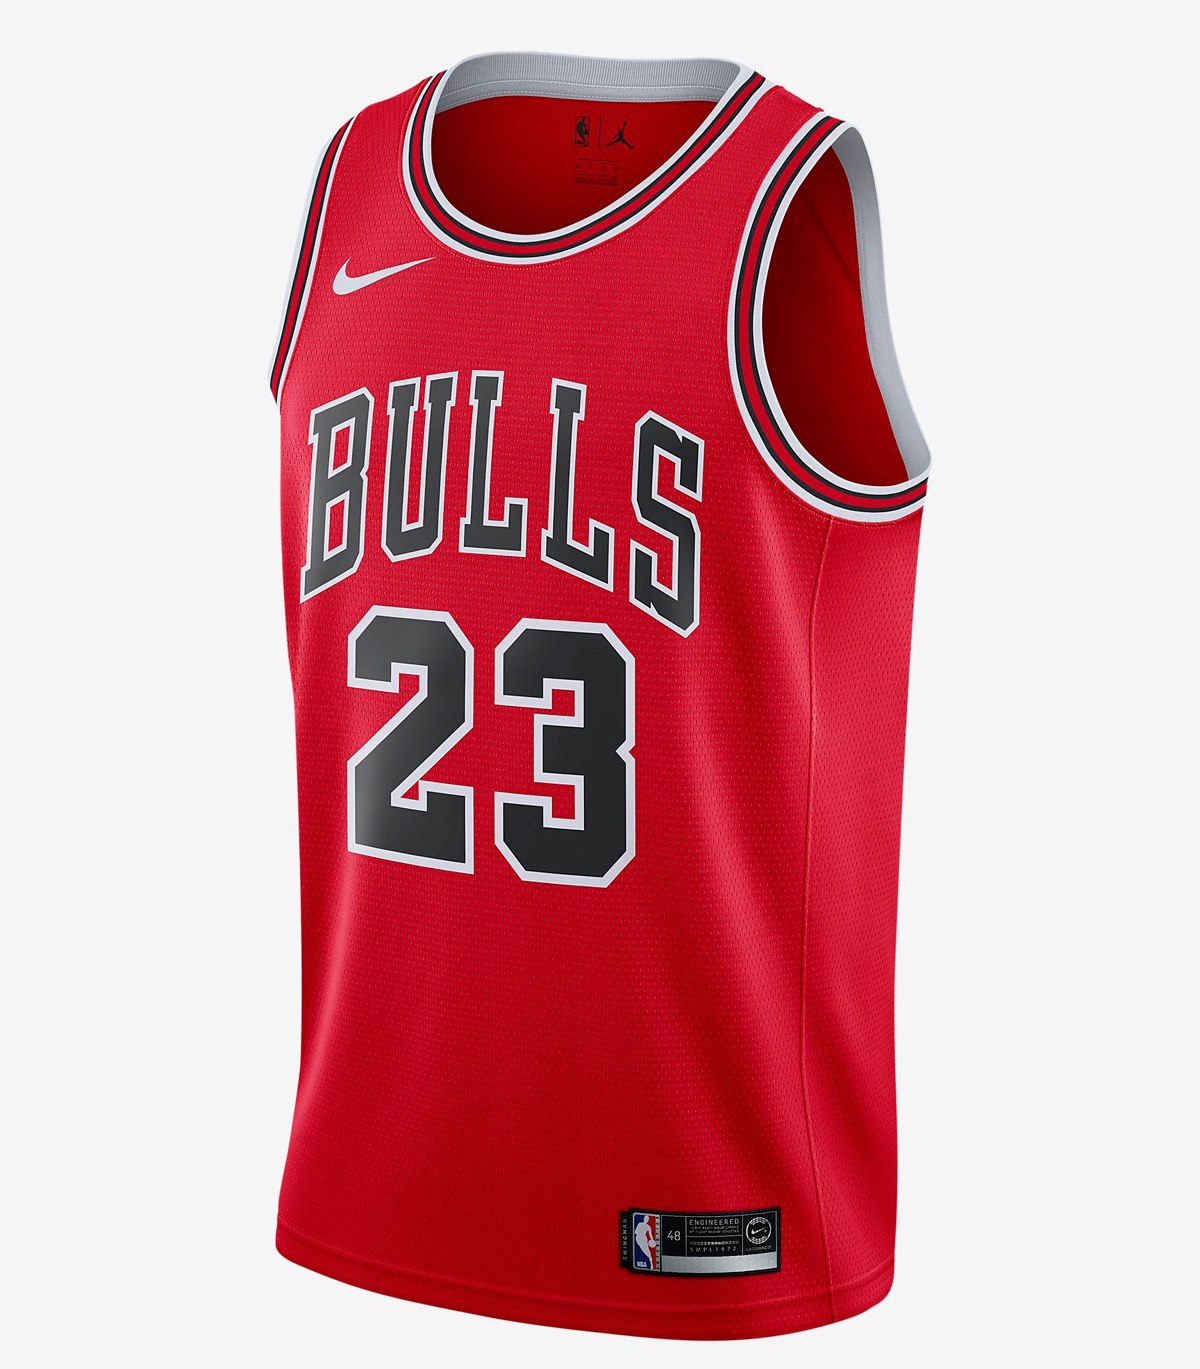 michael-jordan-chicago-bulls-icon-swingman-nba-connected-jersey-1